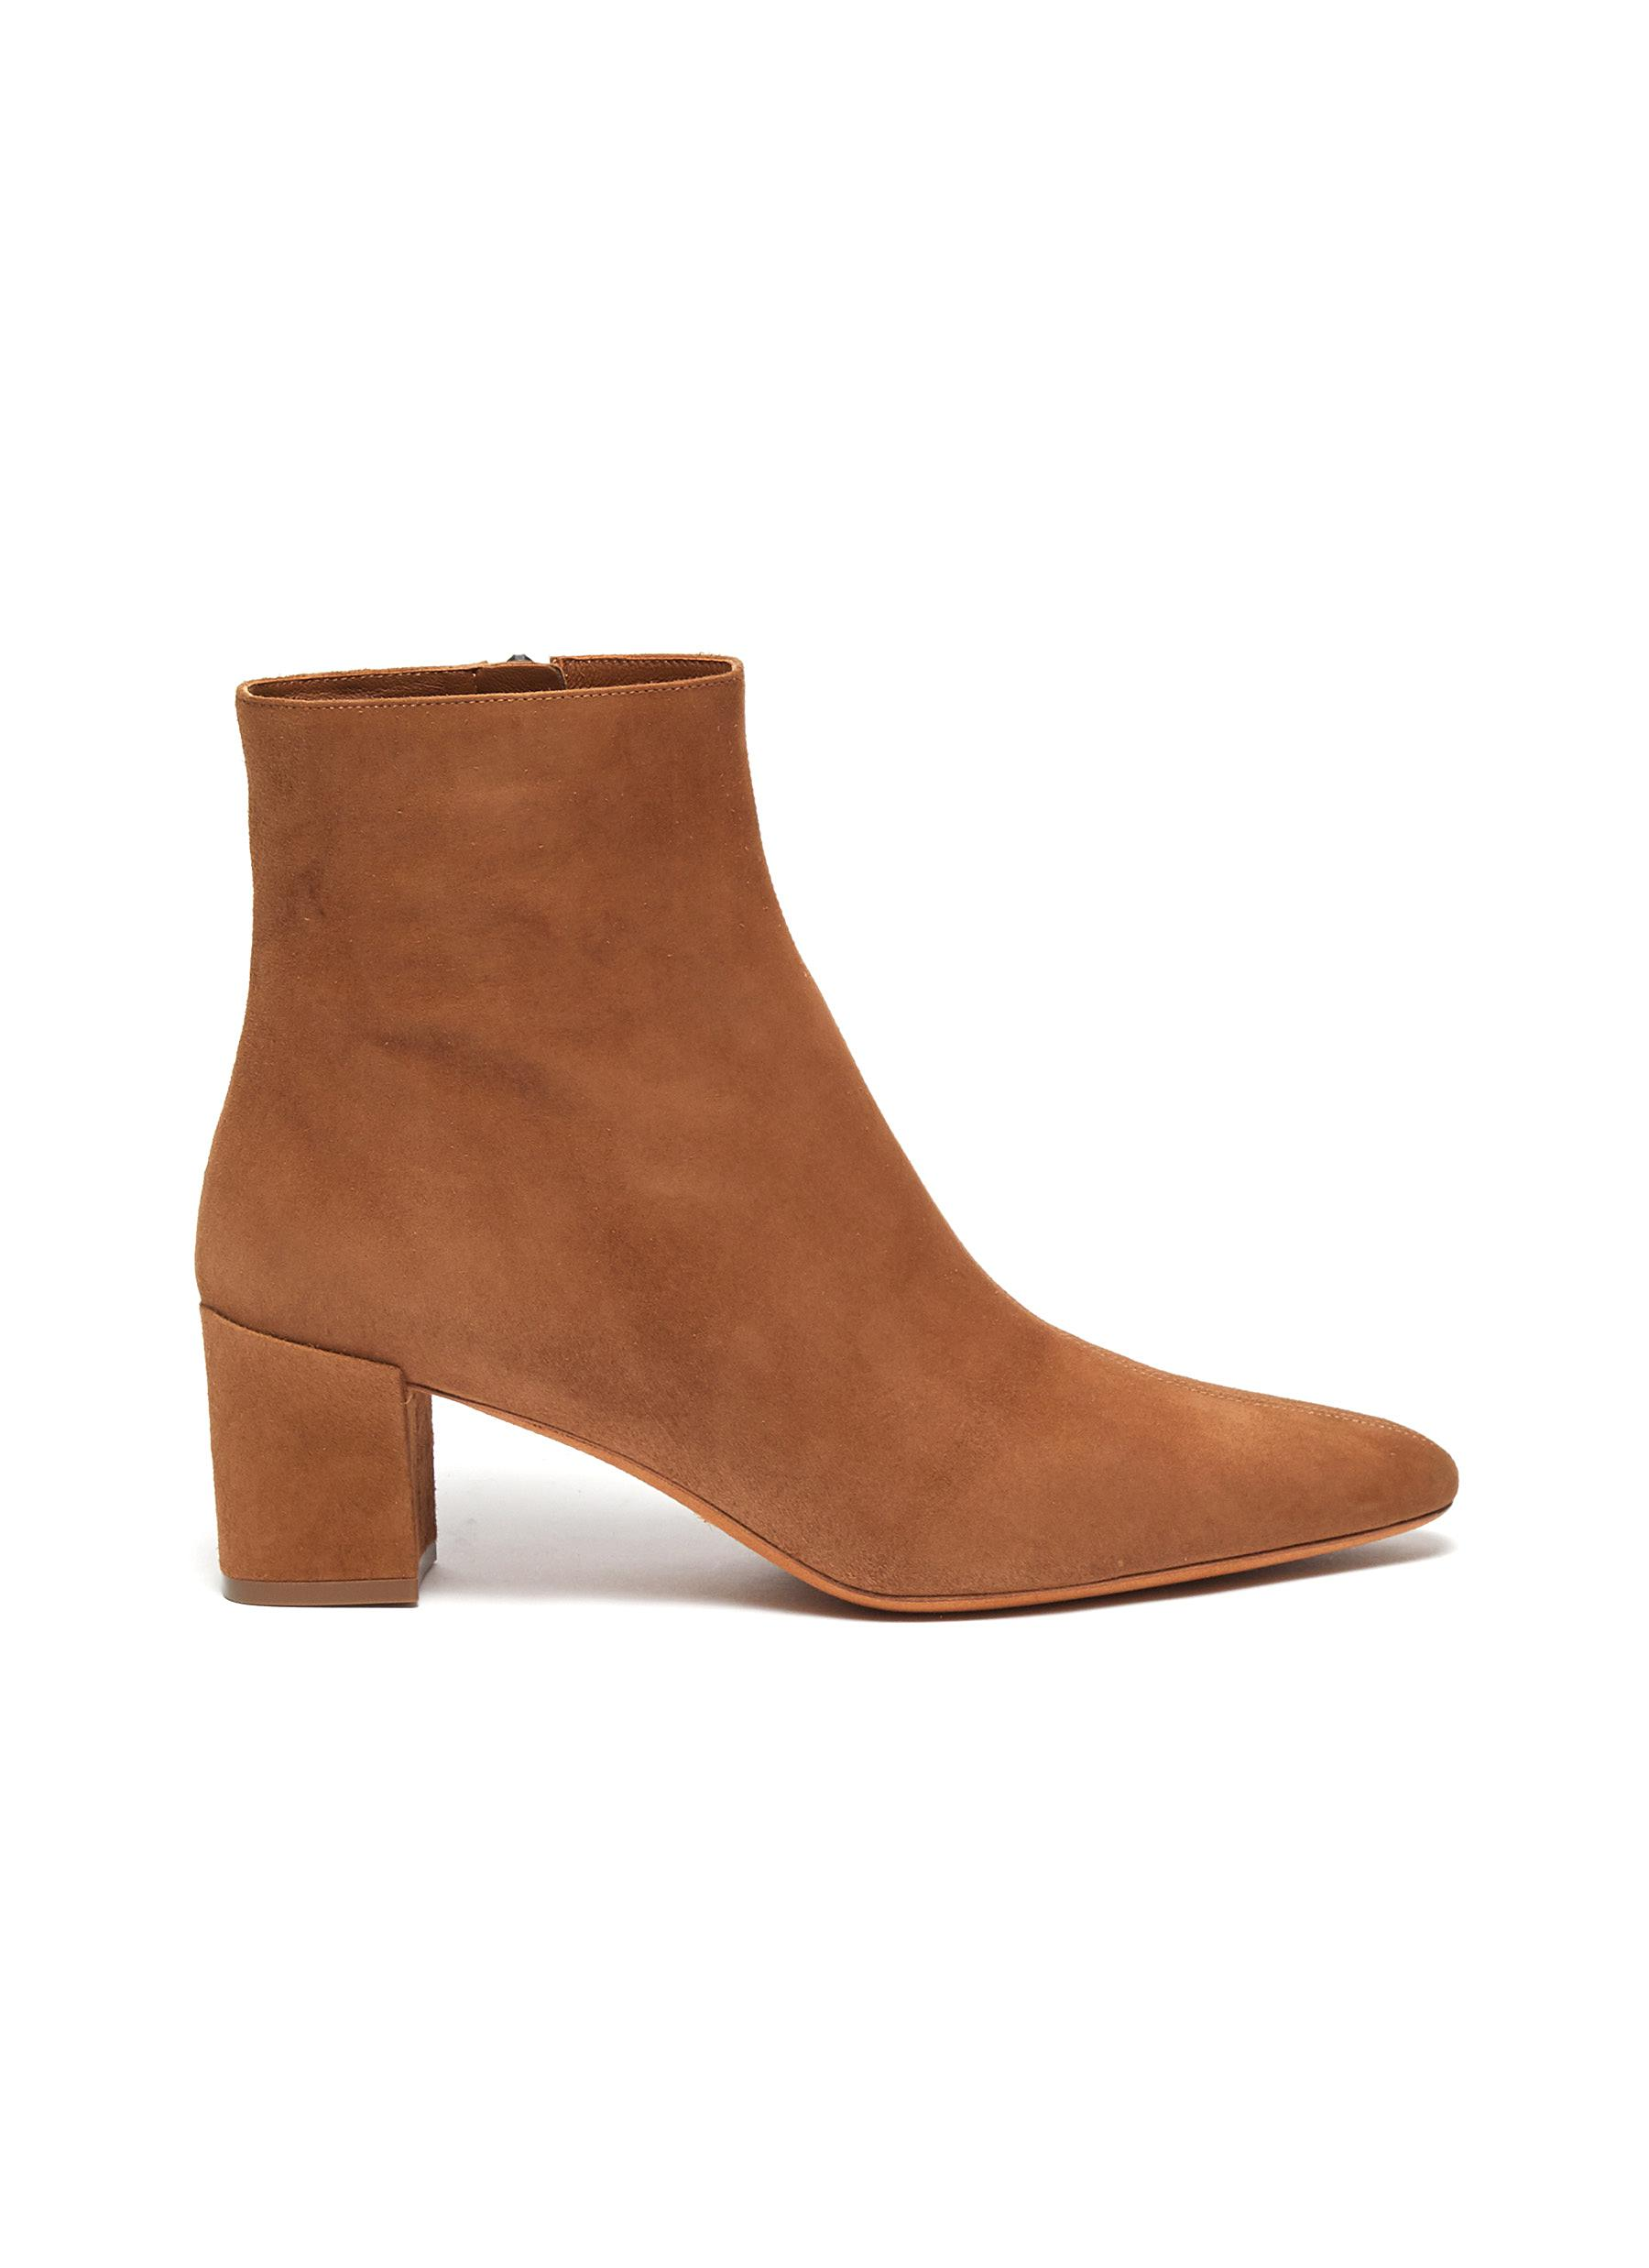 Lanica suede ankle boots by Vince